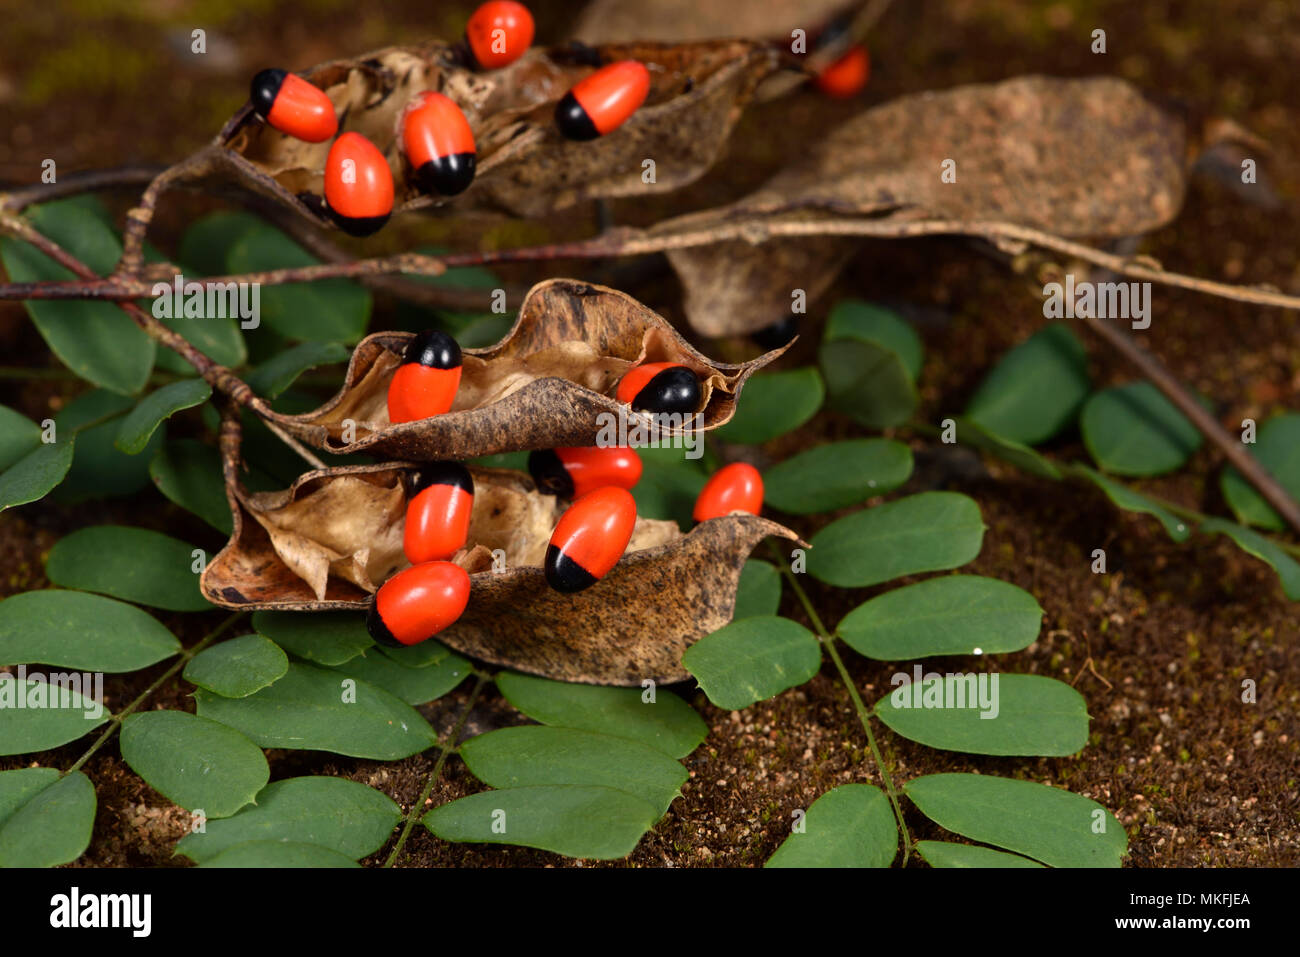 Rosary pea or Paternoster pea (Abrus precatorius), Andasibe, Perinet, Alaotra-Mangoro Region, Madagascar Stock Photo